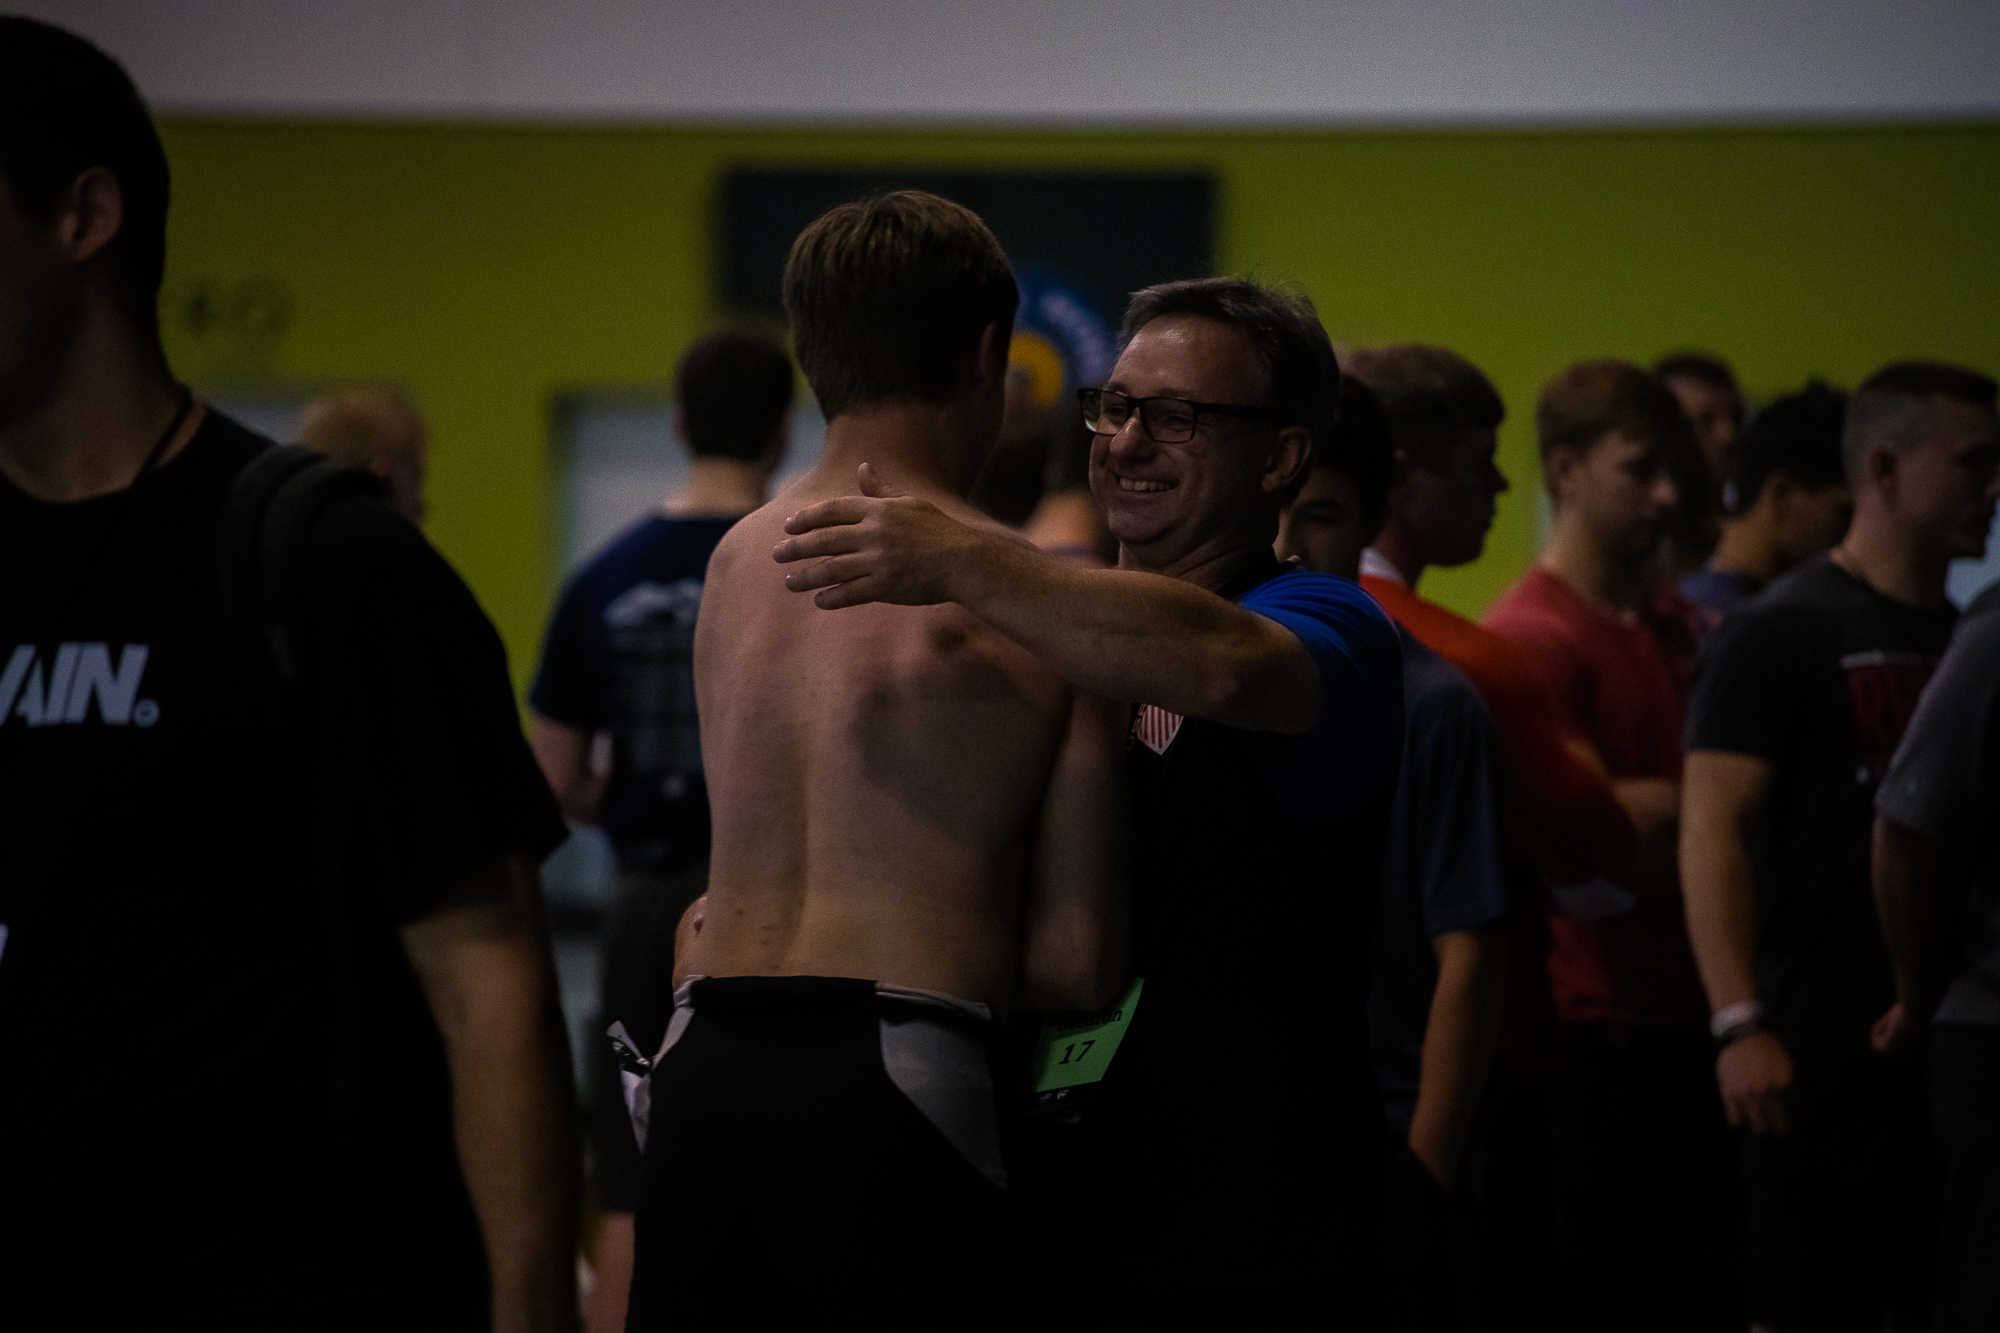 usaw-youth-nationals-weightlifting-photos-georgia-2.jpg